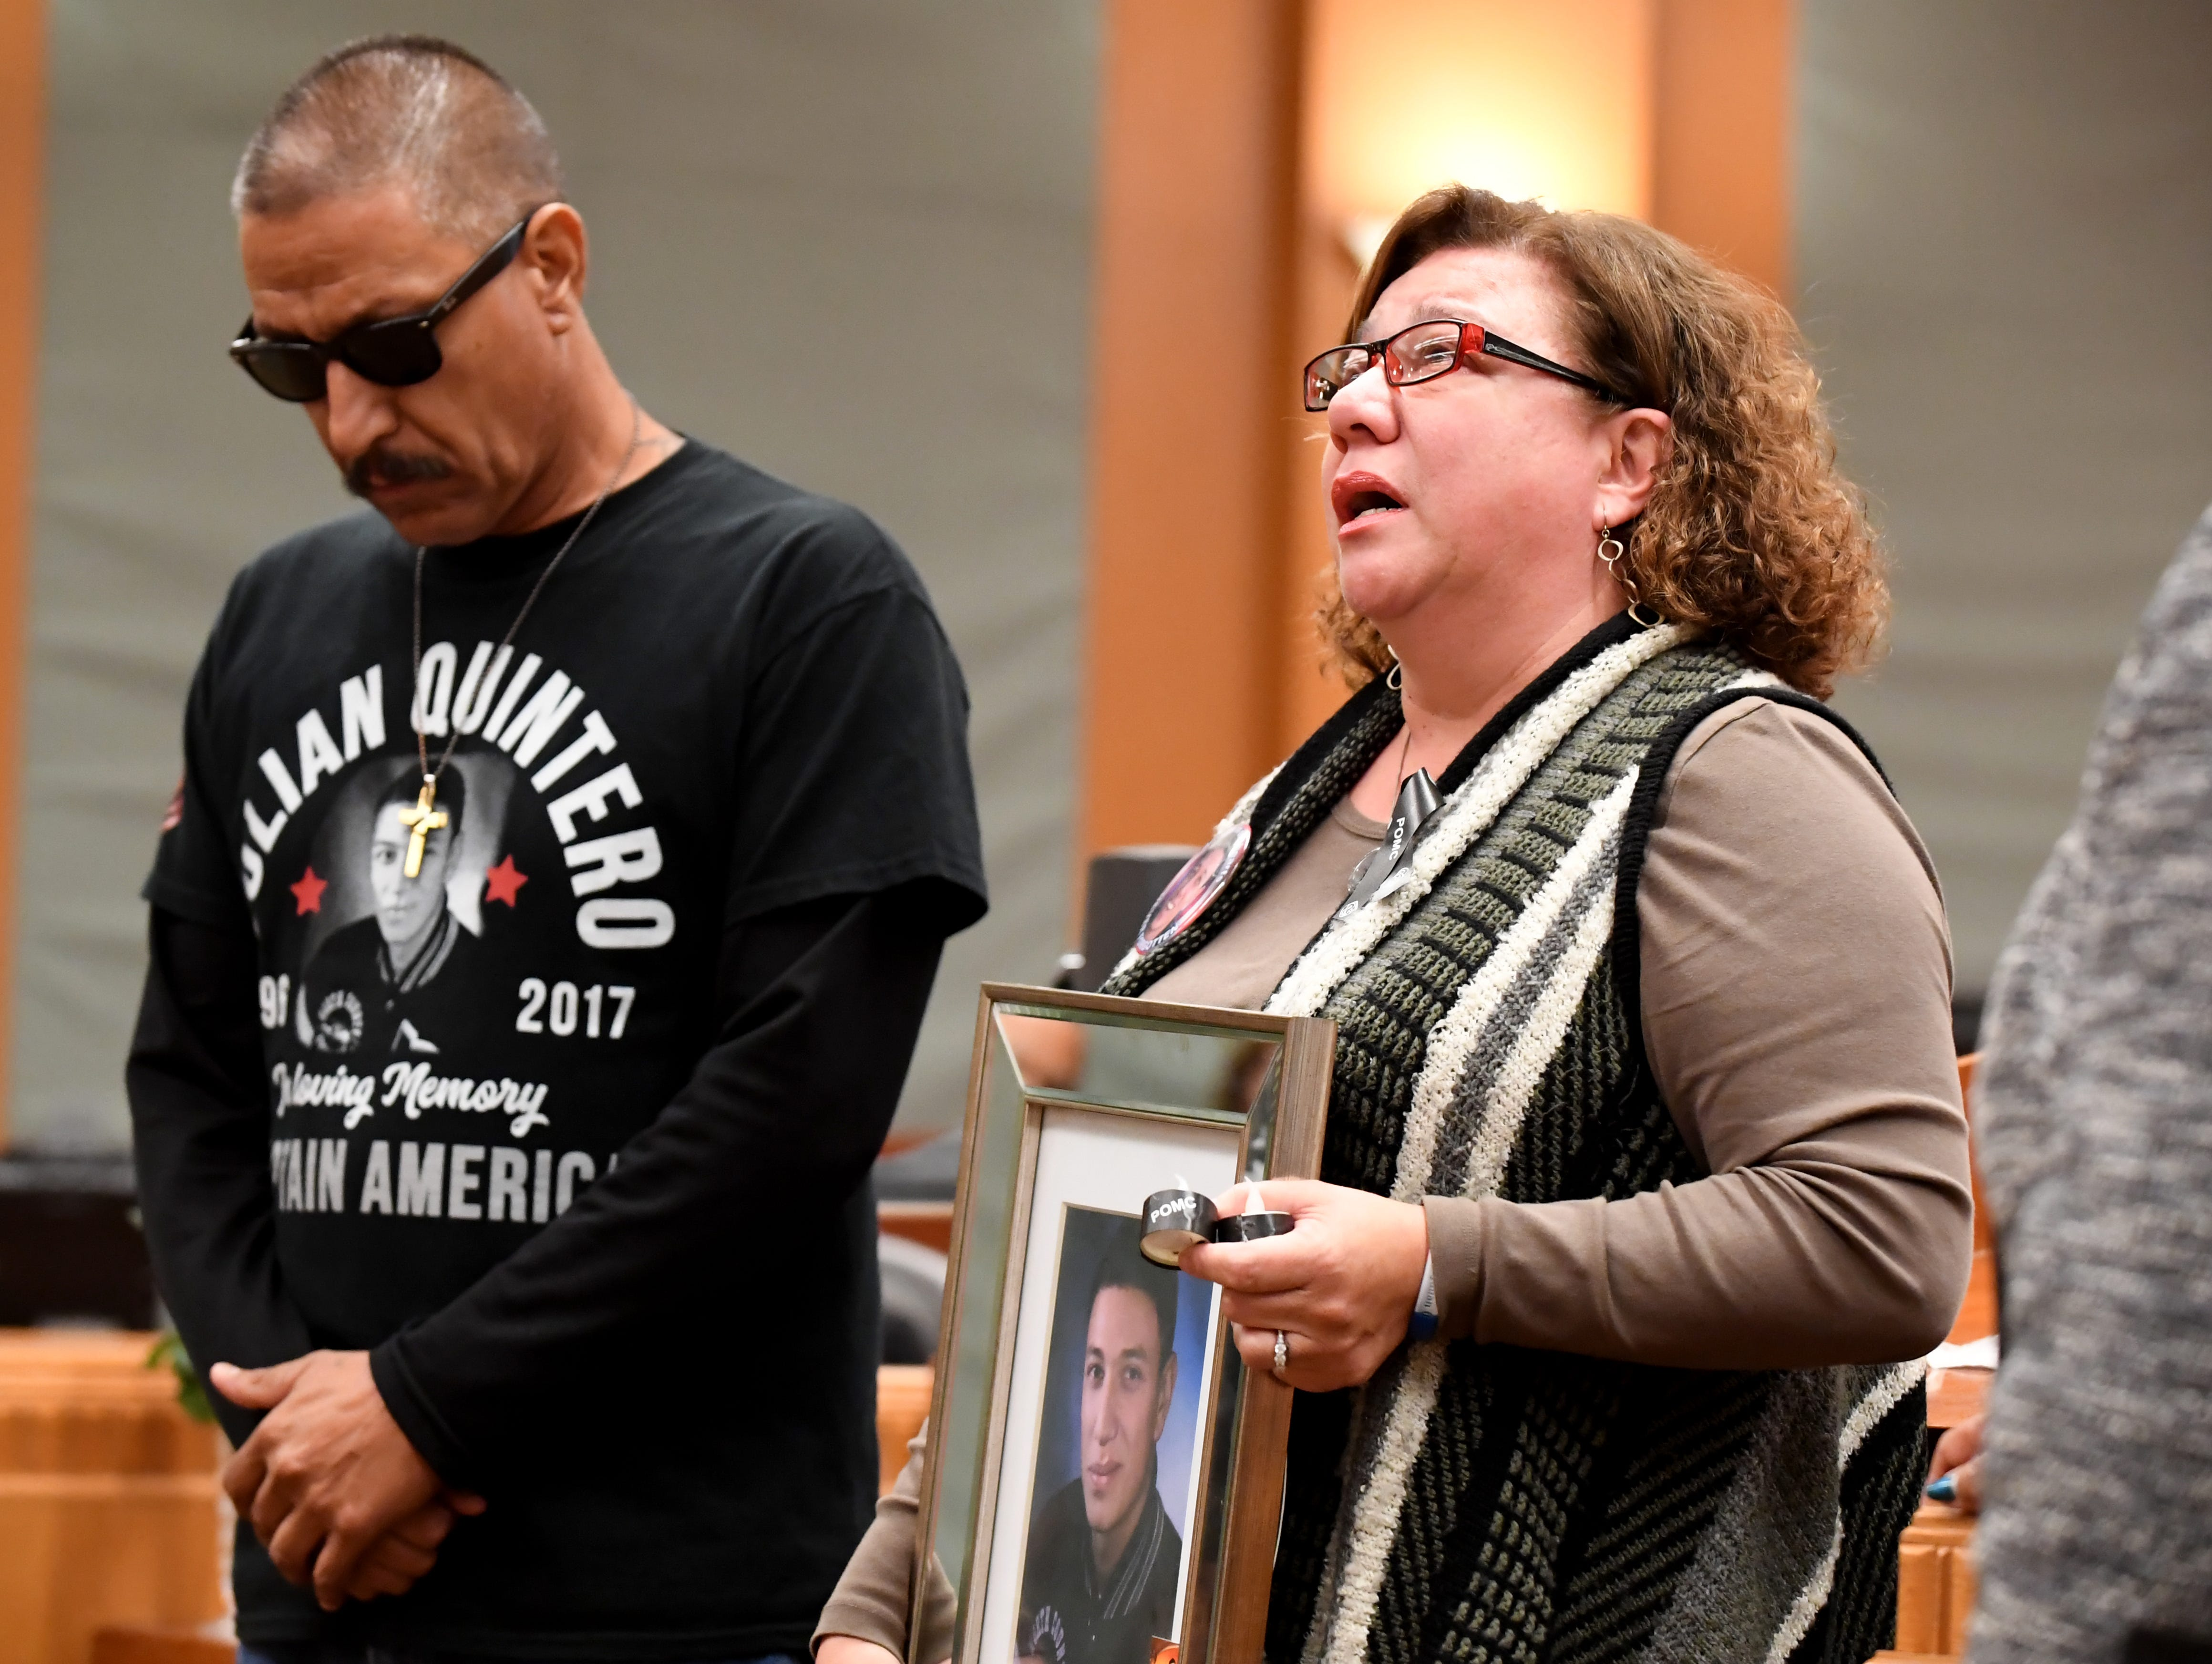 Gilbert and Lupe Quintero honor their son Julian Quintero who was killed in January 2017.